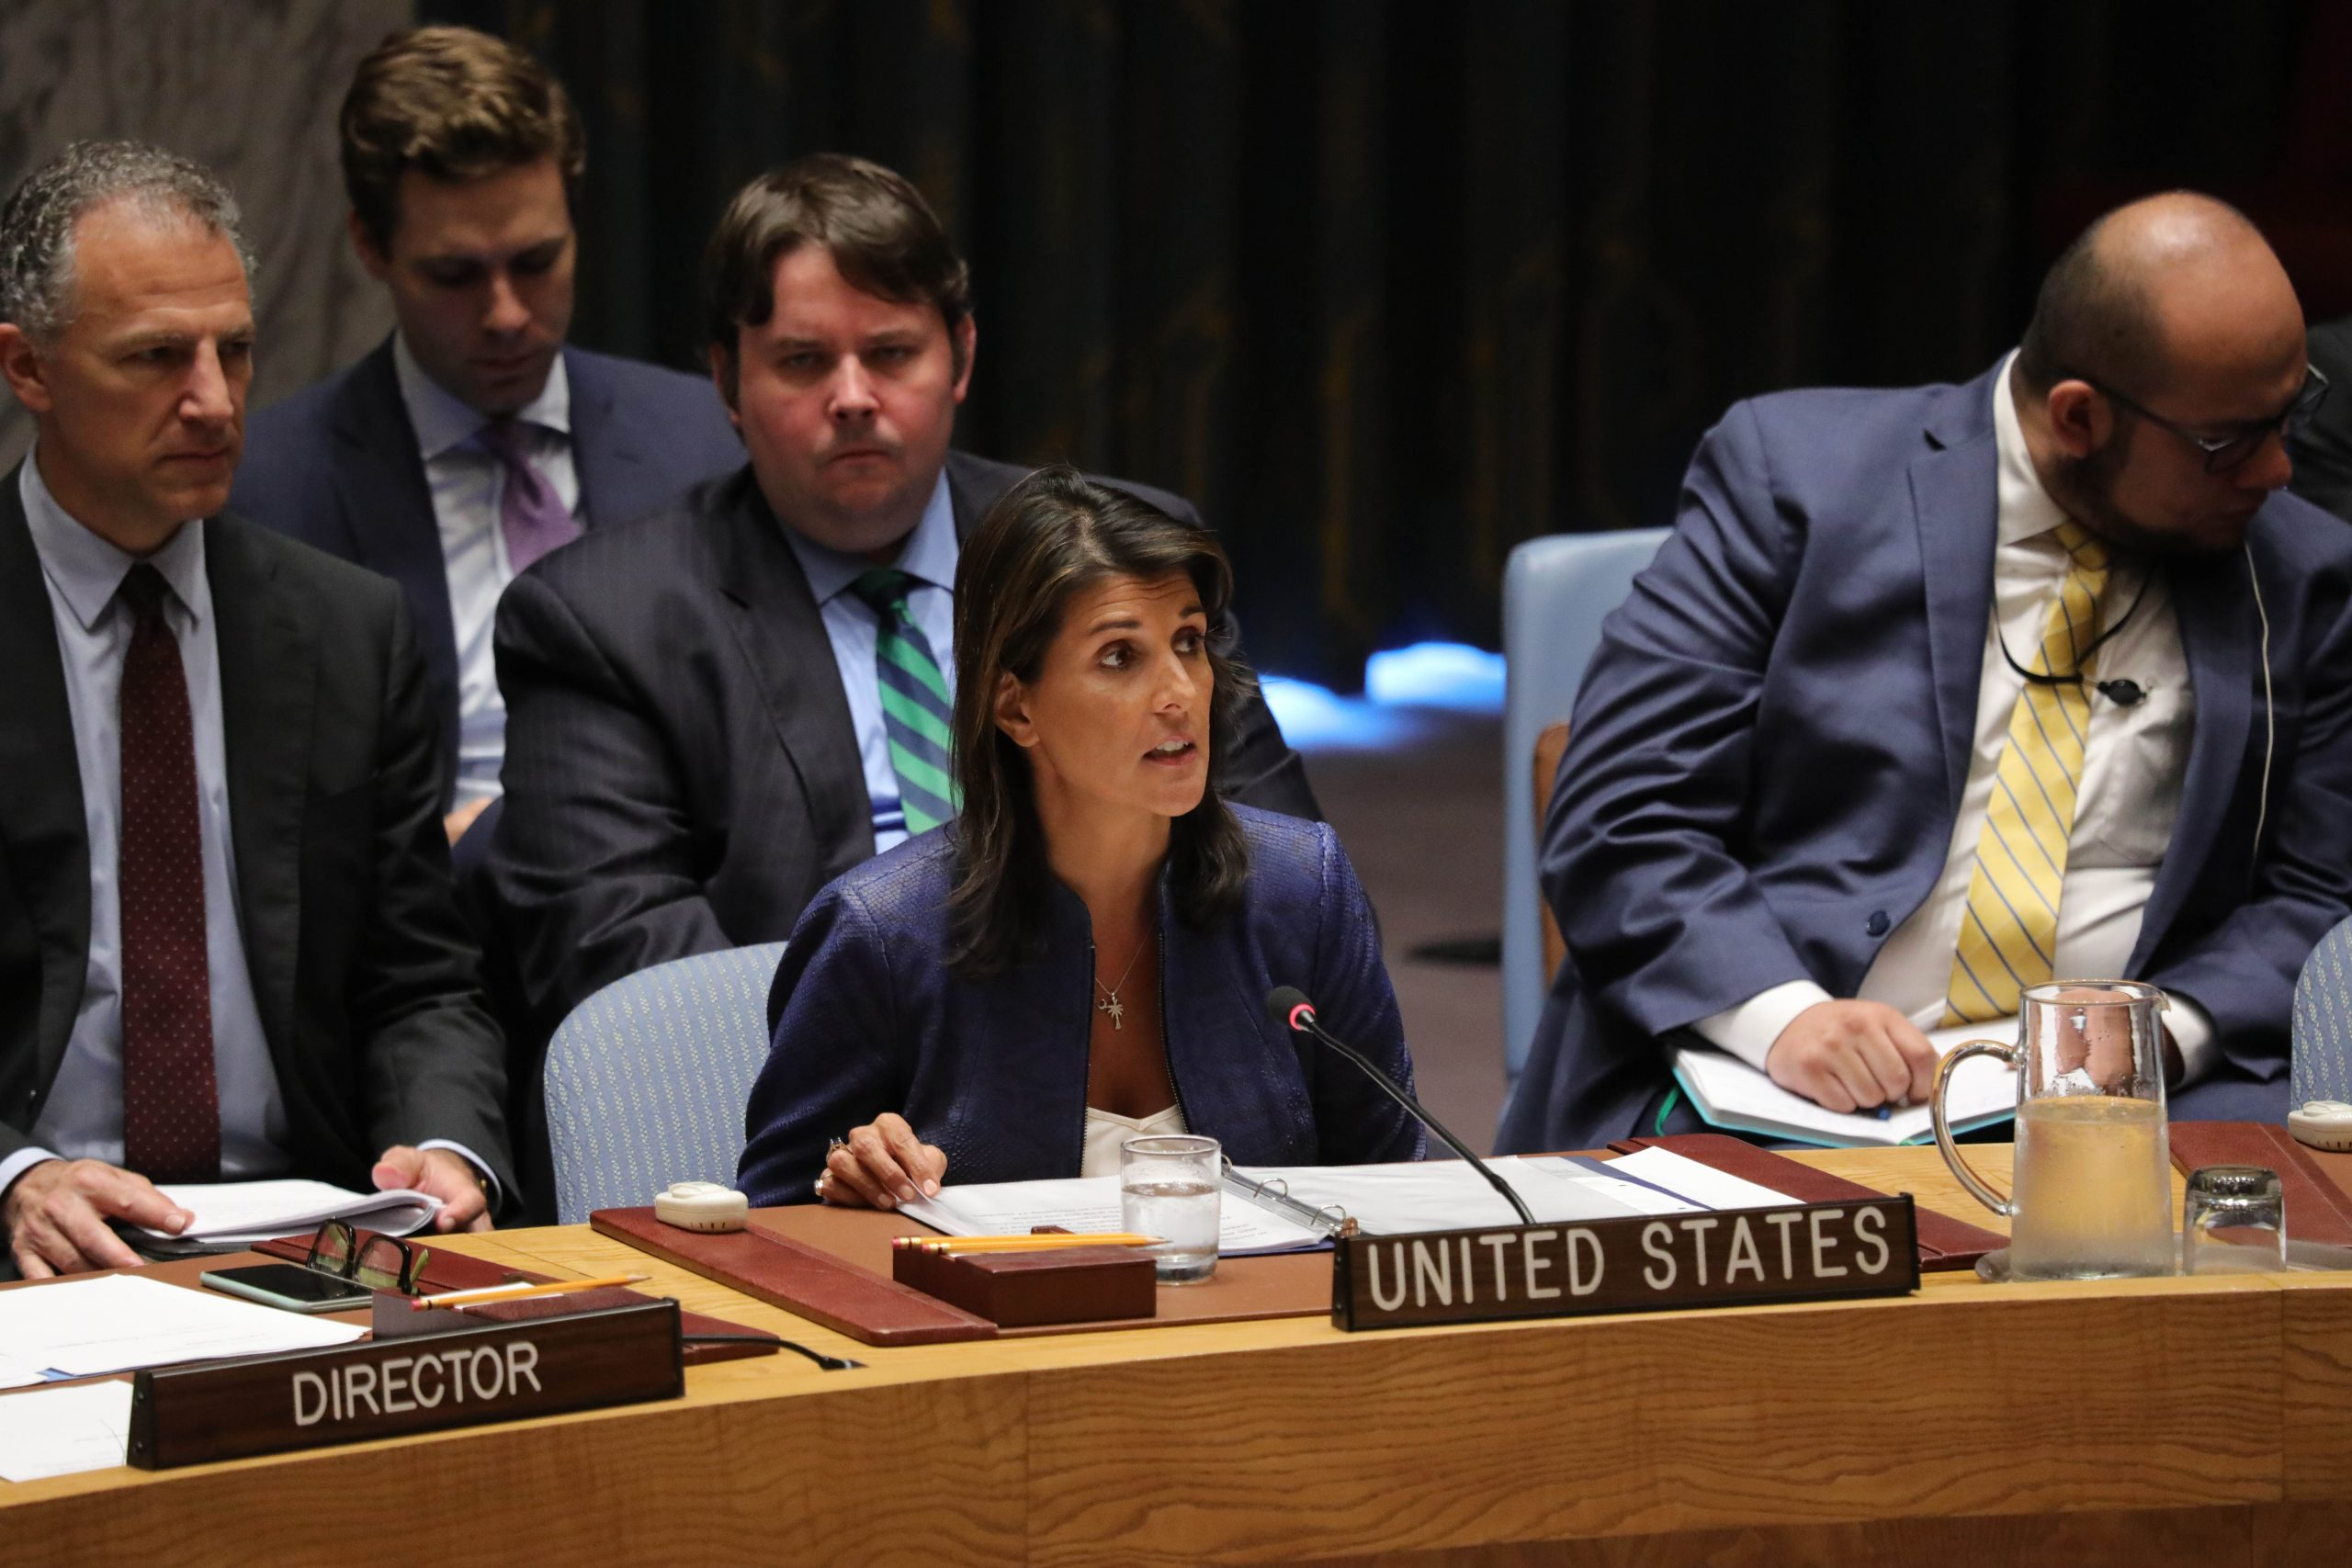 Nikki Haley: Socialism Pummels The Little Guy 🧎‍♂️